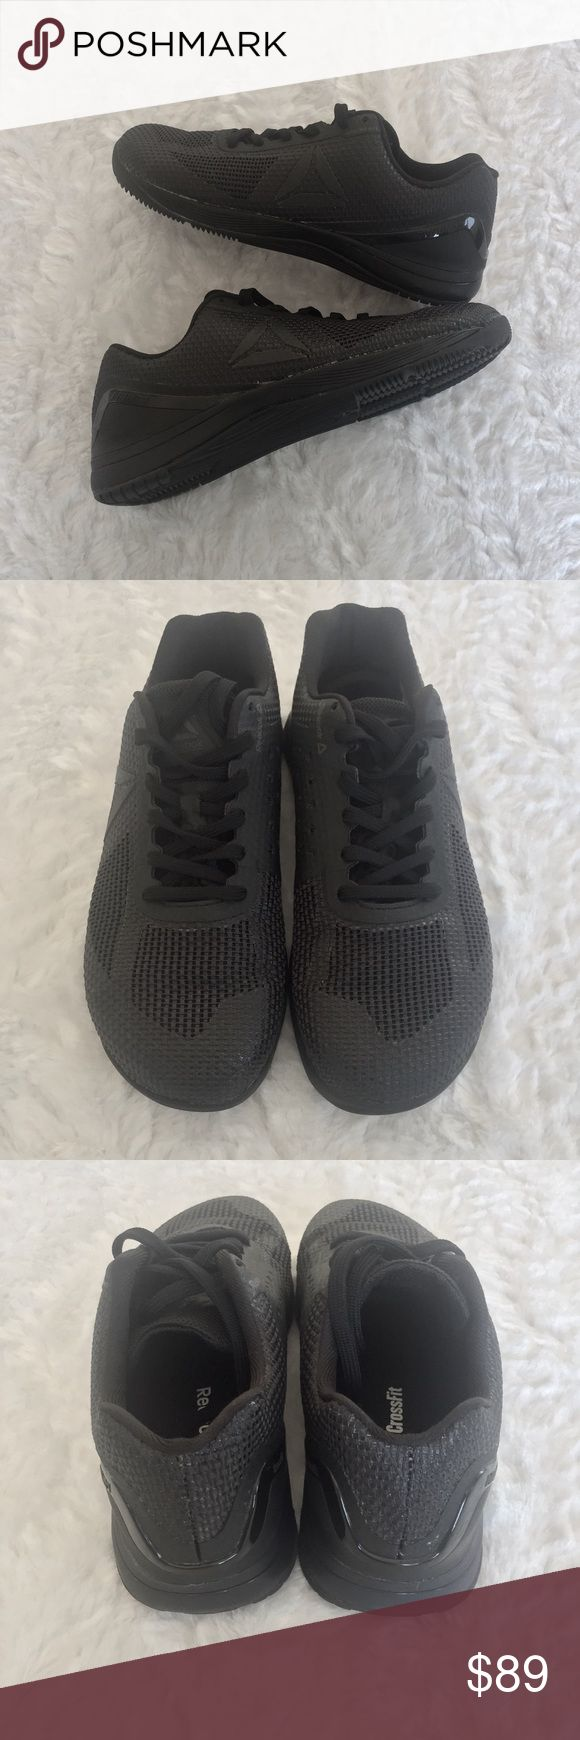 new // nwot reebok • nano 7.0 crossfit shoes Size 9 men's Reebok 7.0 Nano Crossfit shoes.  New without tags.  Bottom had price marker removed from it.  Never worn.  No trades.  Make me a reasonable offer. Reebok Shoes Athletic Shoes